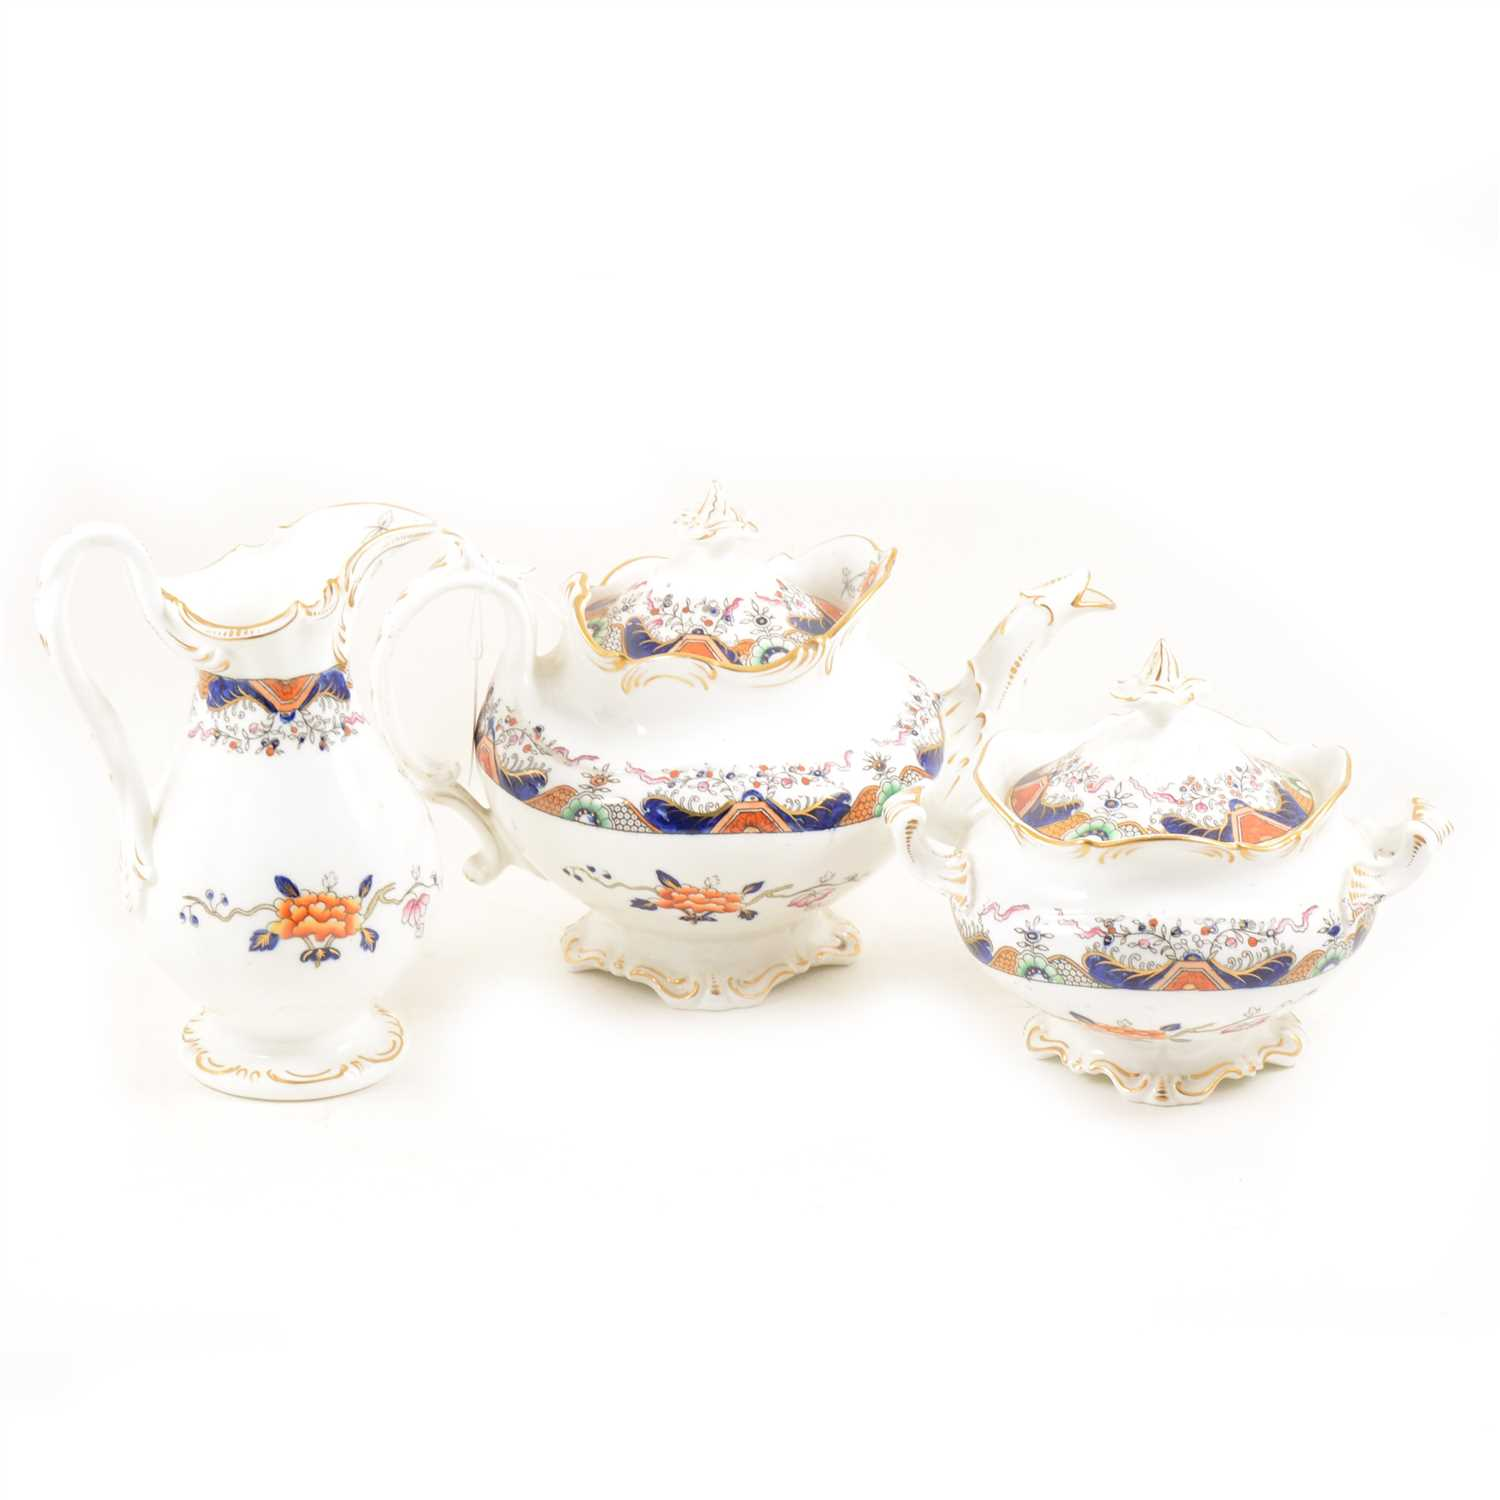 Lot 83-A Victorian tea/breakfast service, ironstone red blue and green floral design